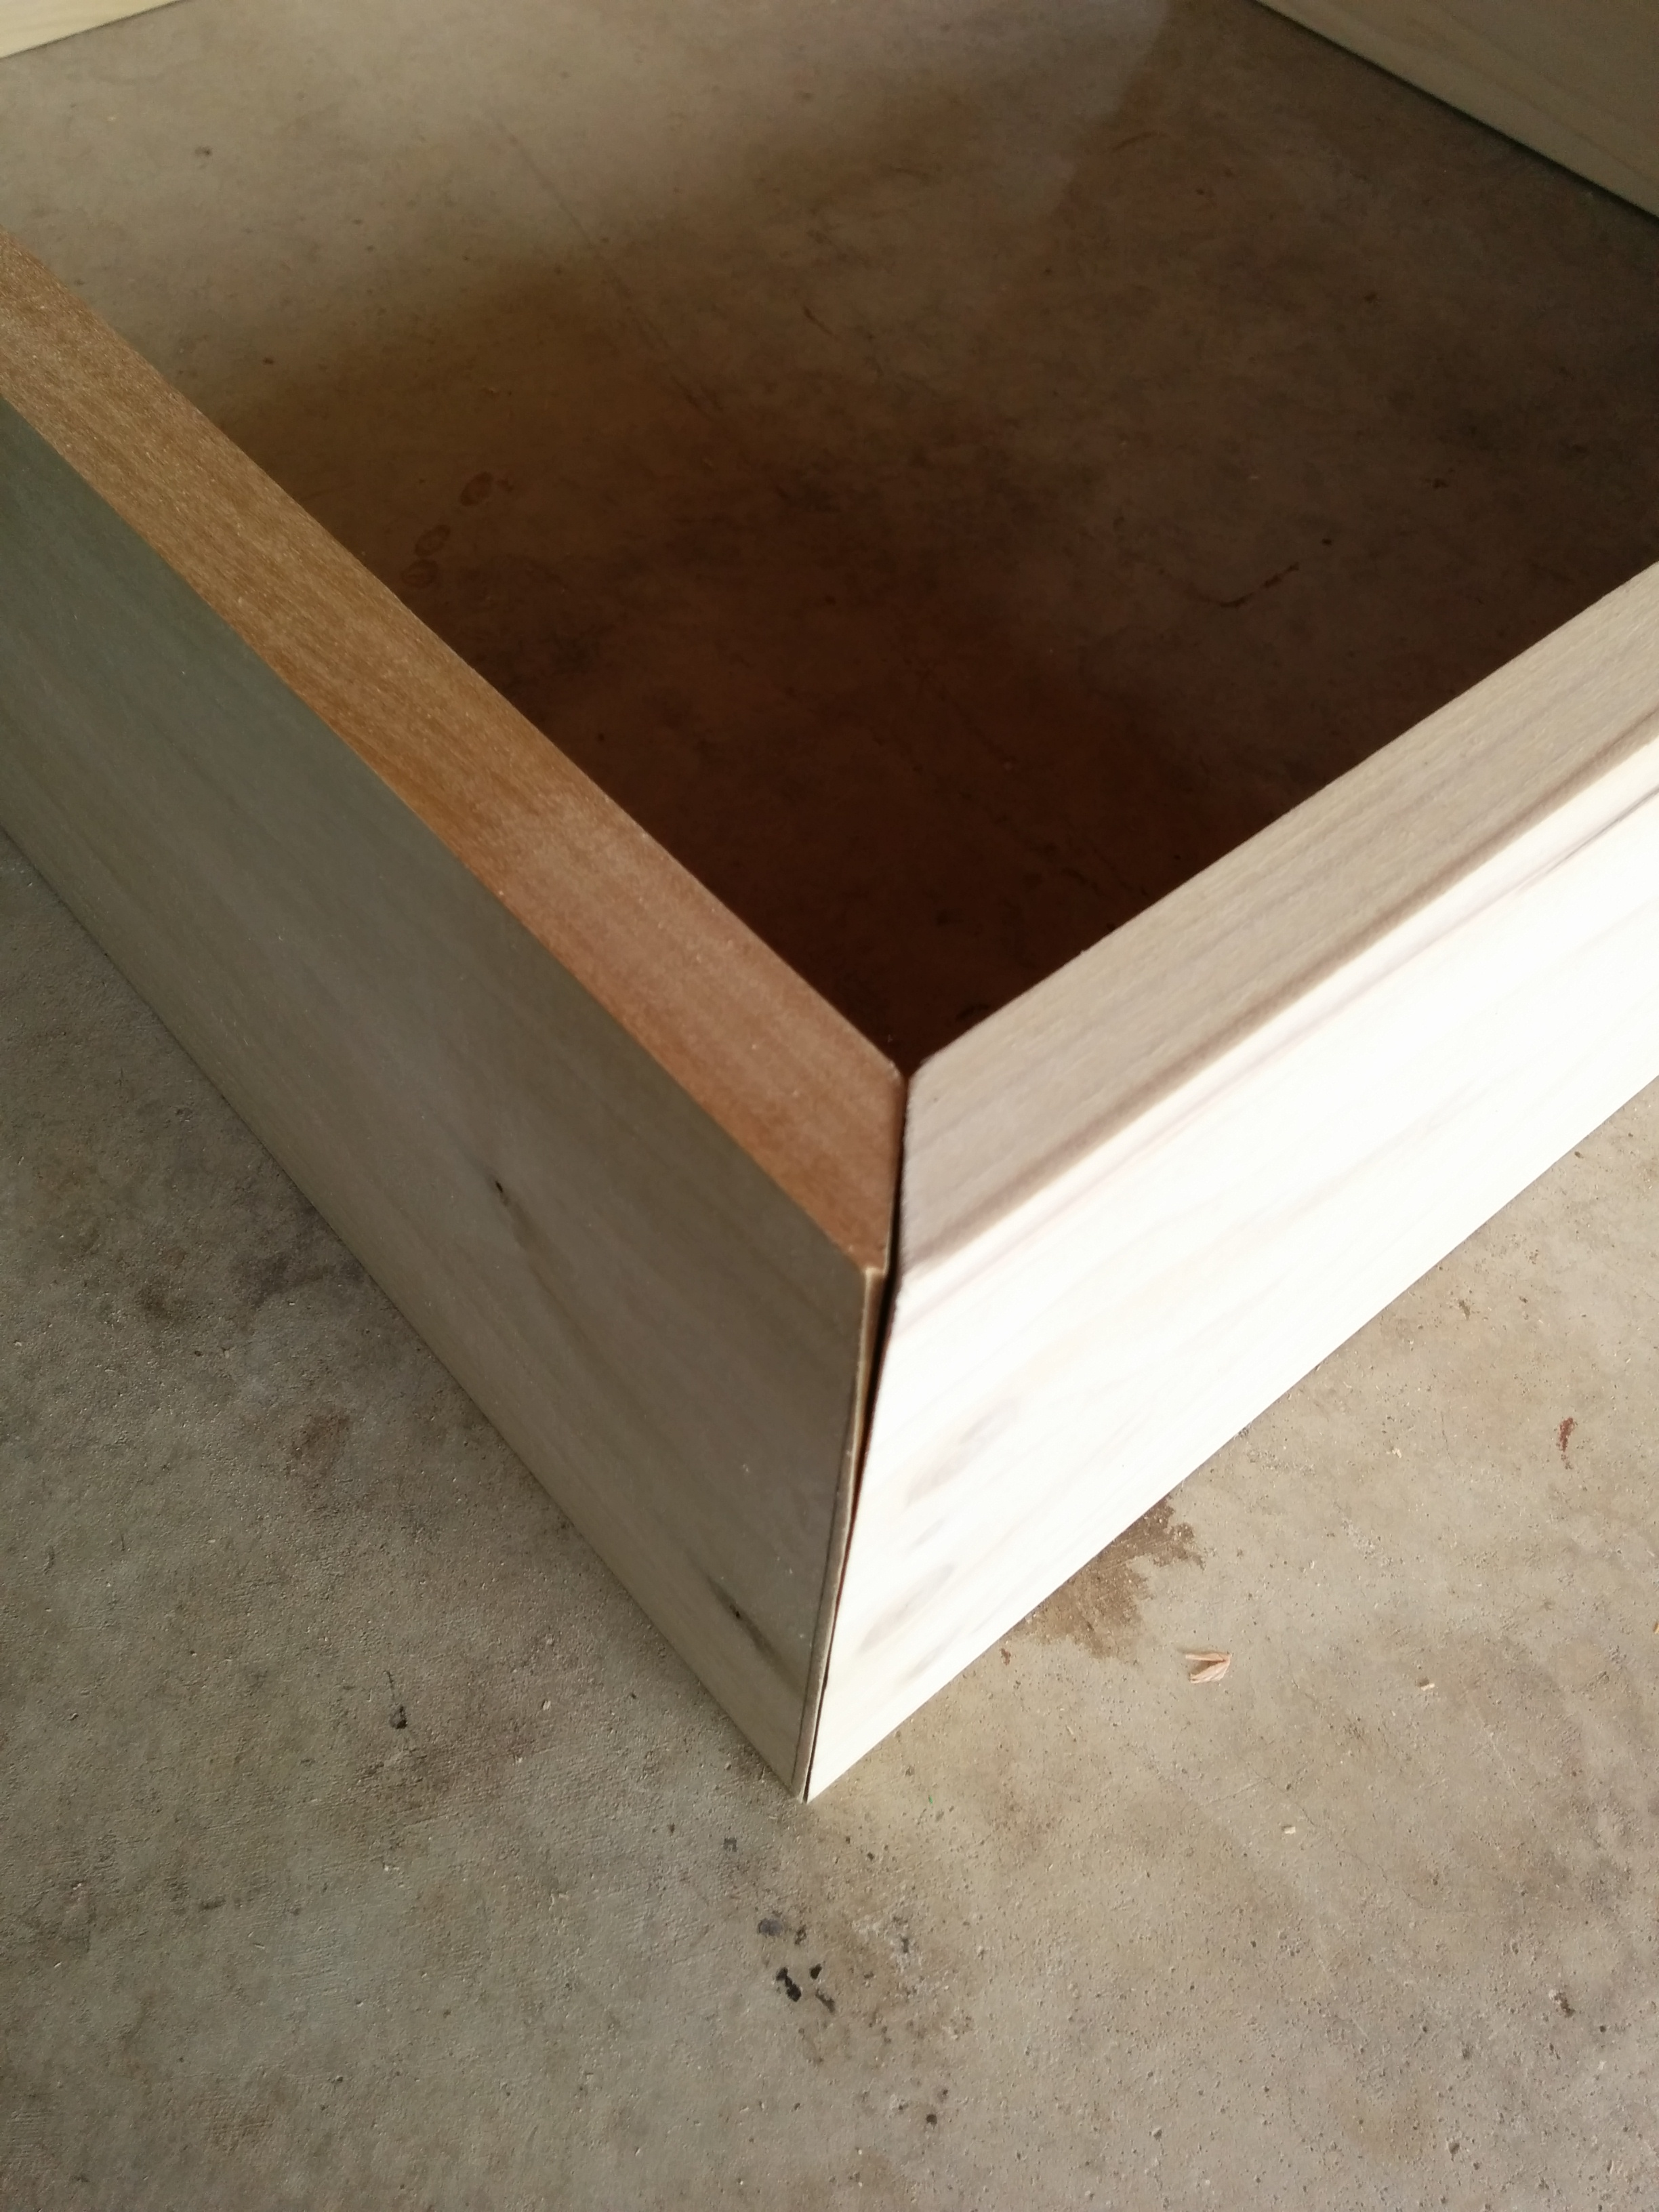 DIY-storage-box-45-angle-corner